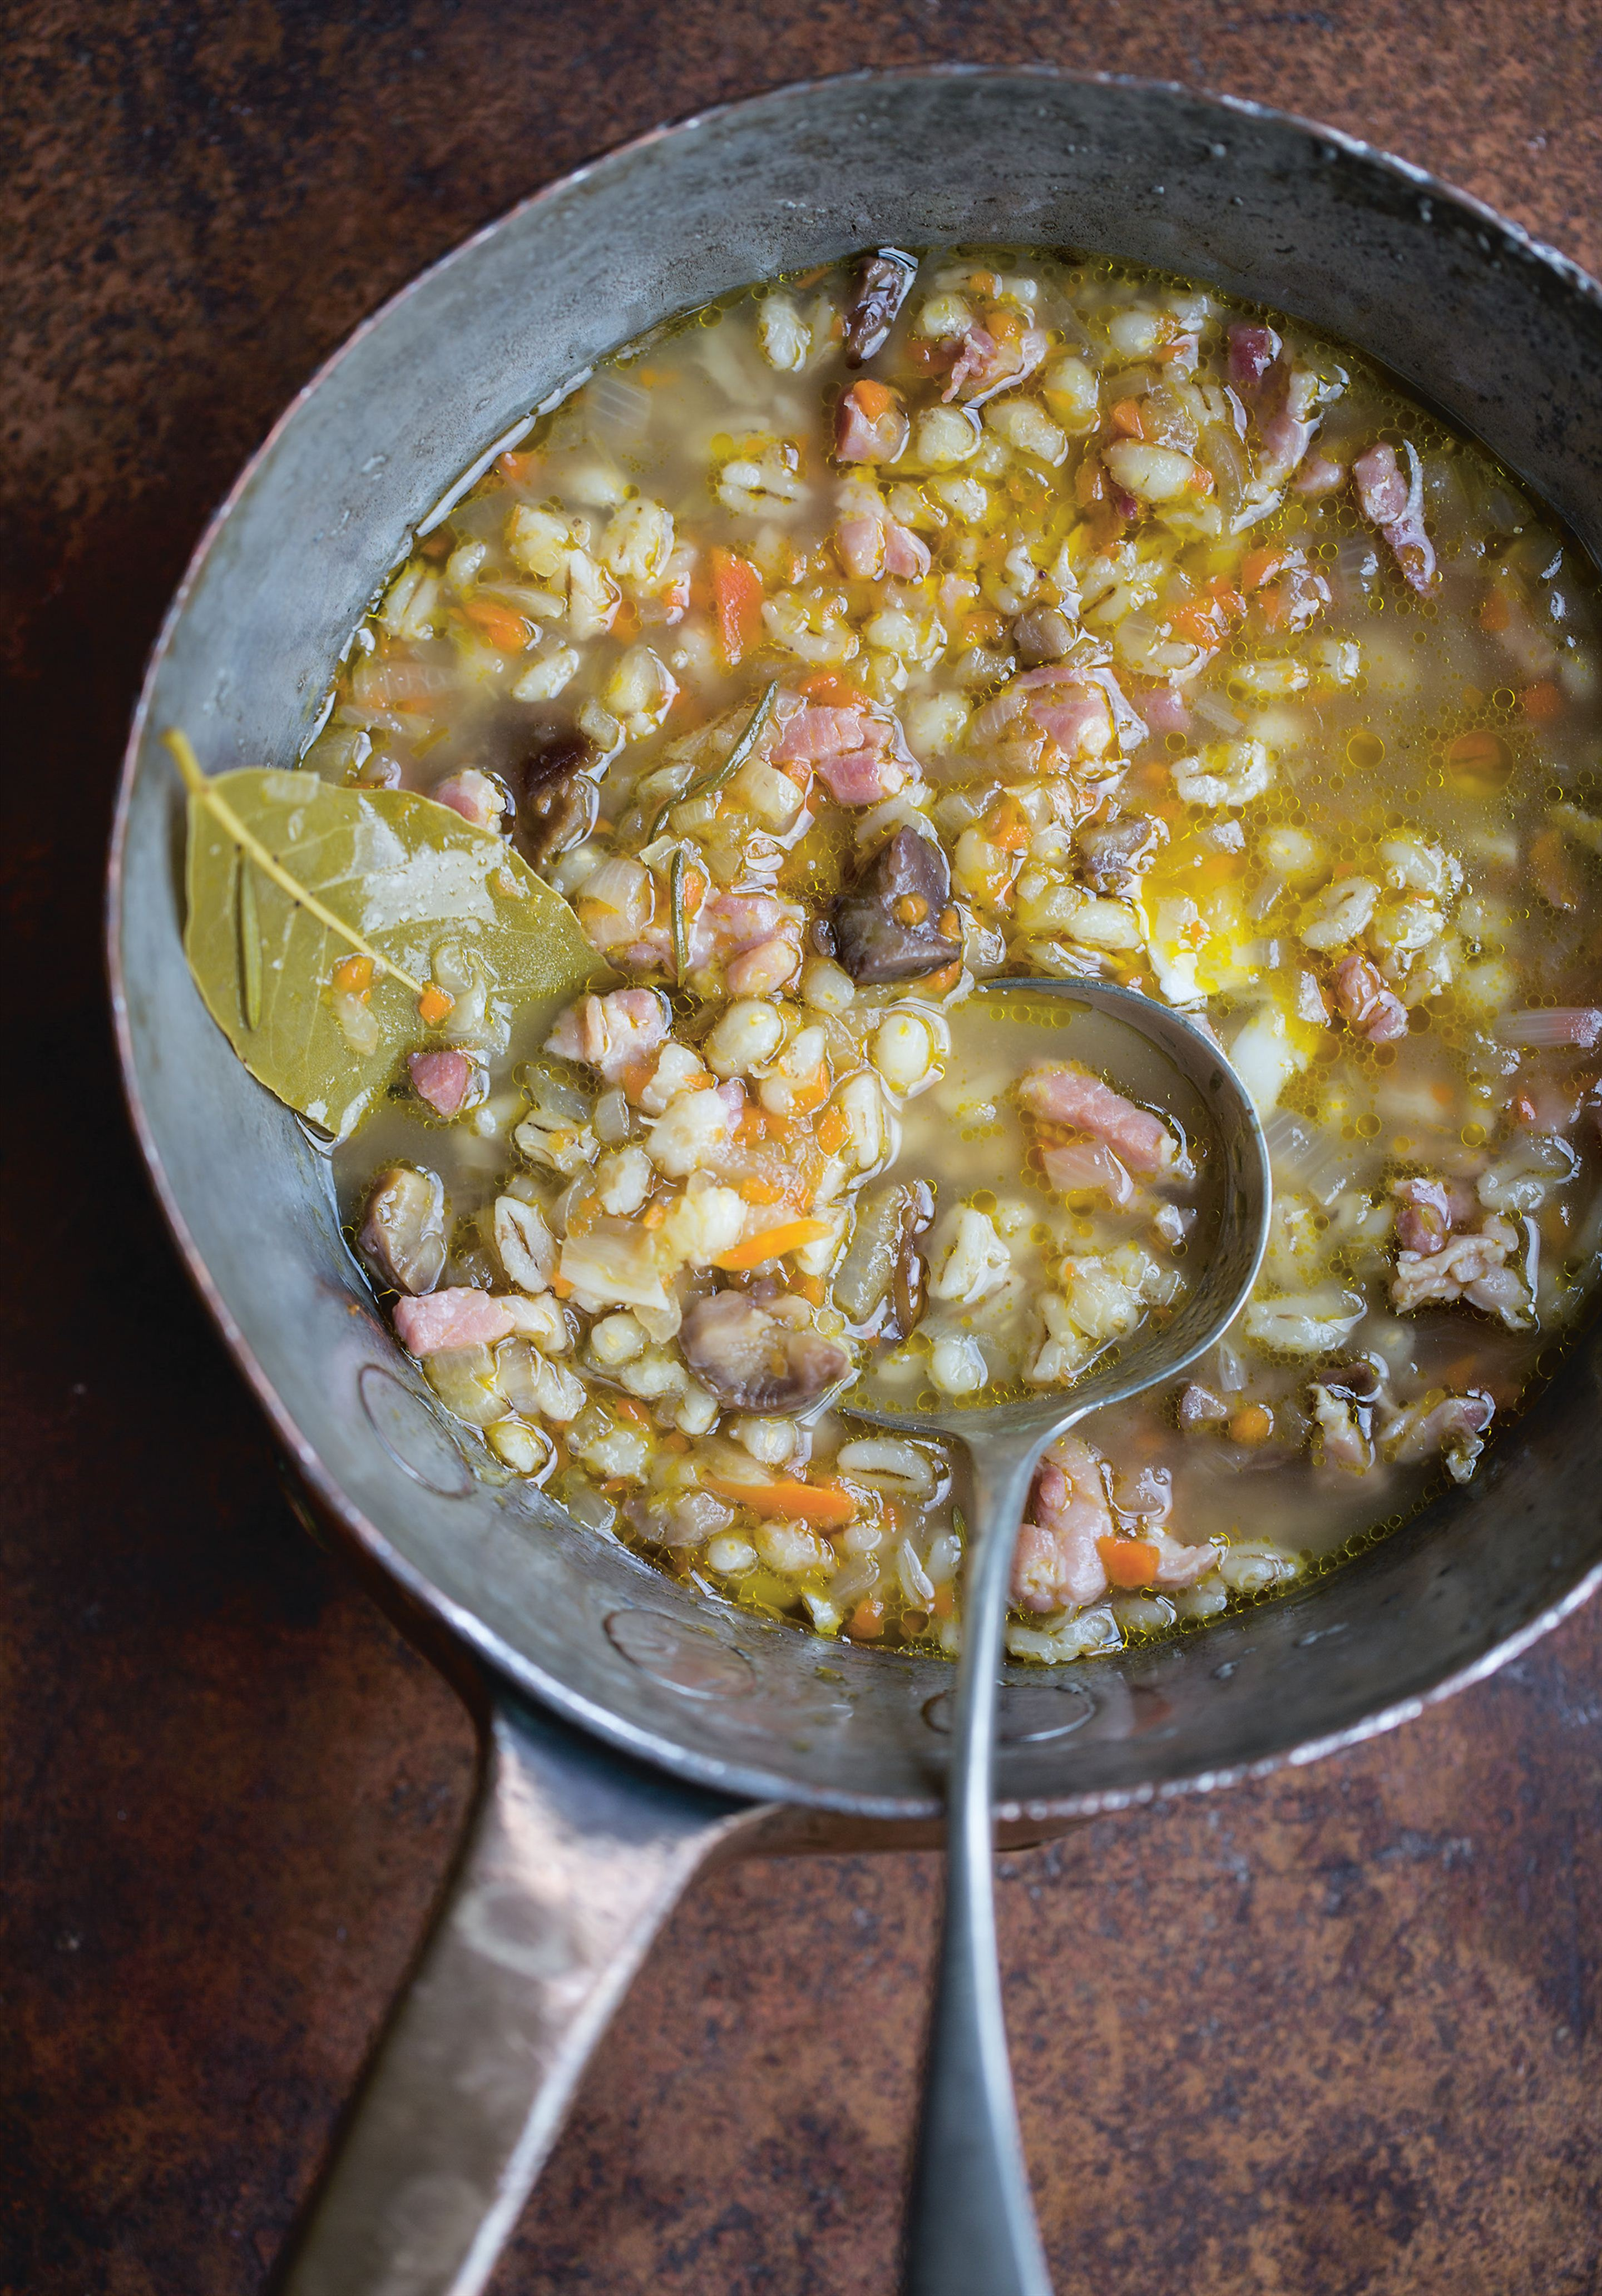 Bacon, chestnut and barley soup